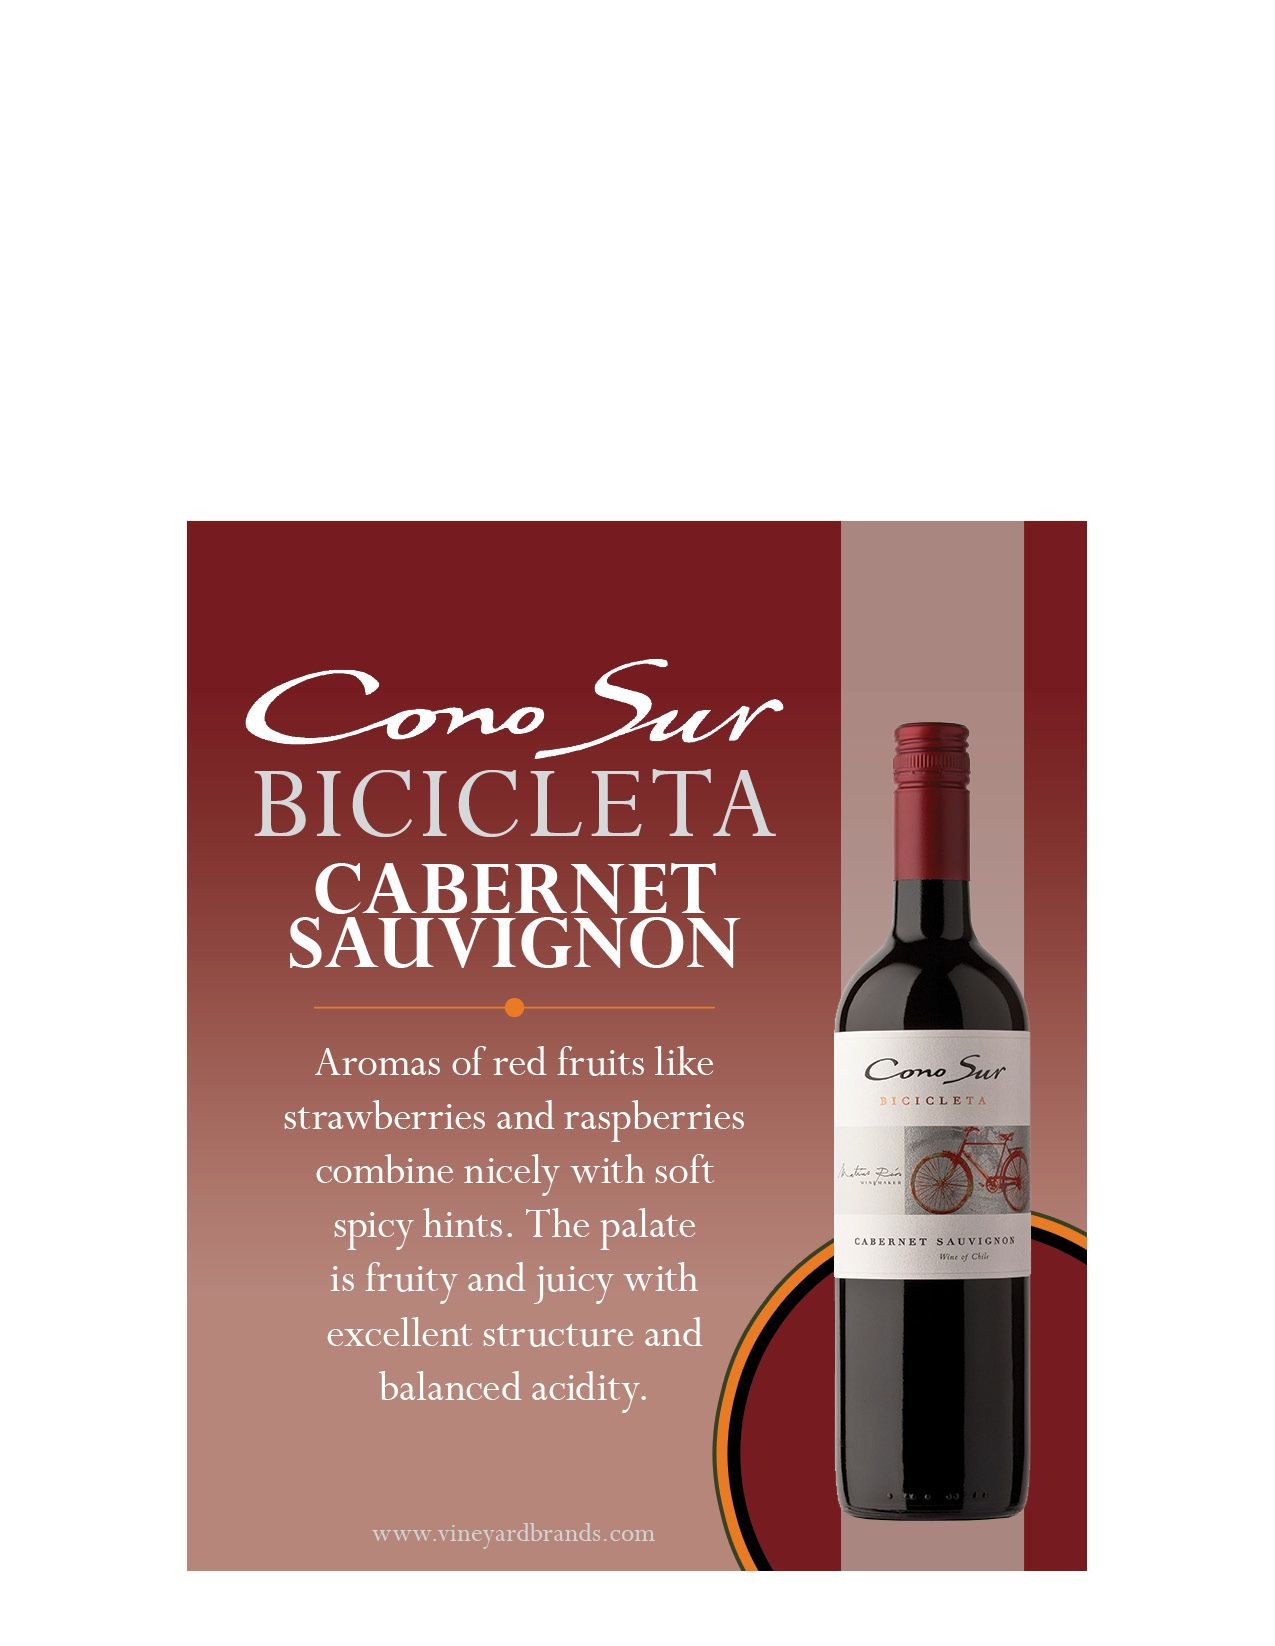 Cono Sur Bicicleta Cabernet Sauvignon Rose Wine Bottle Wine Bottle Bottle